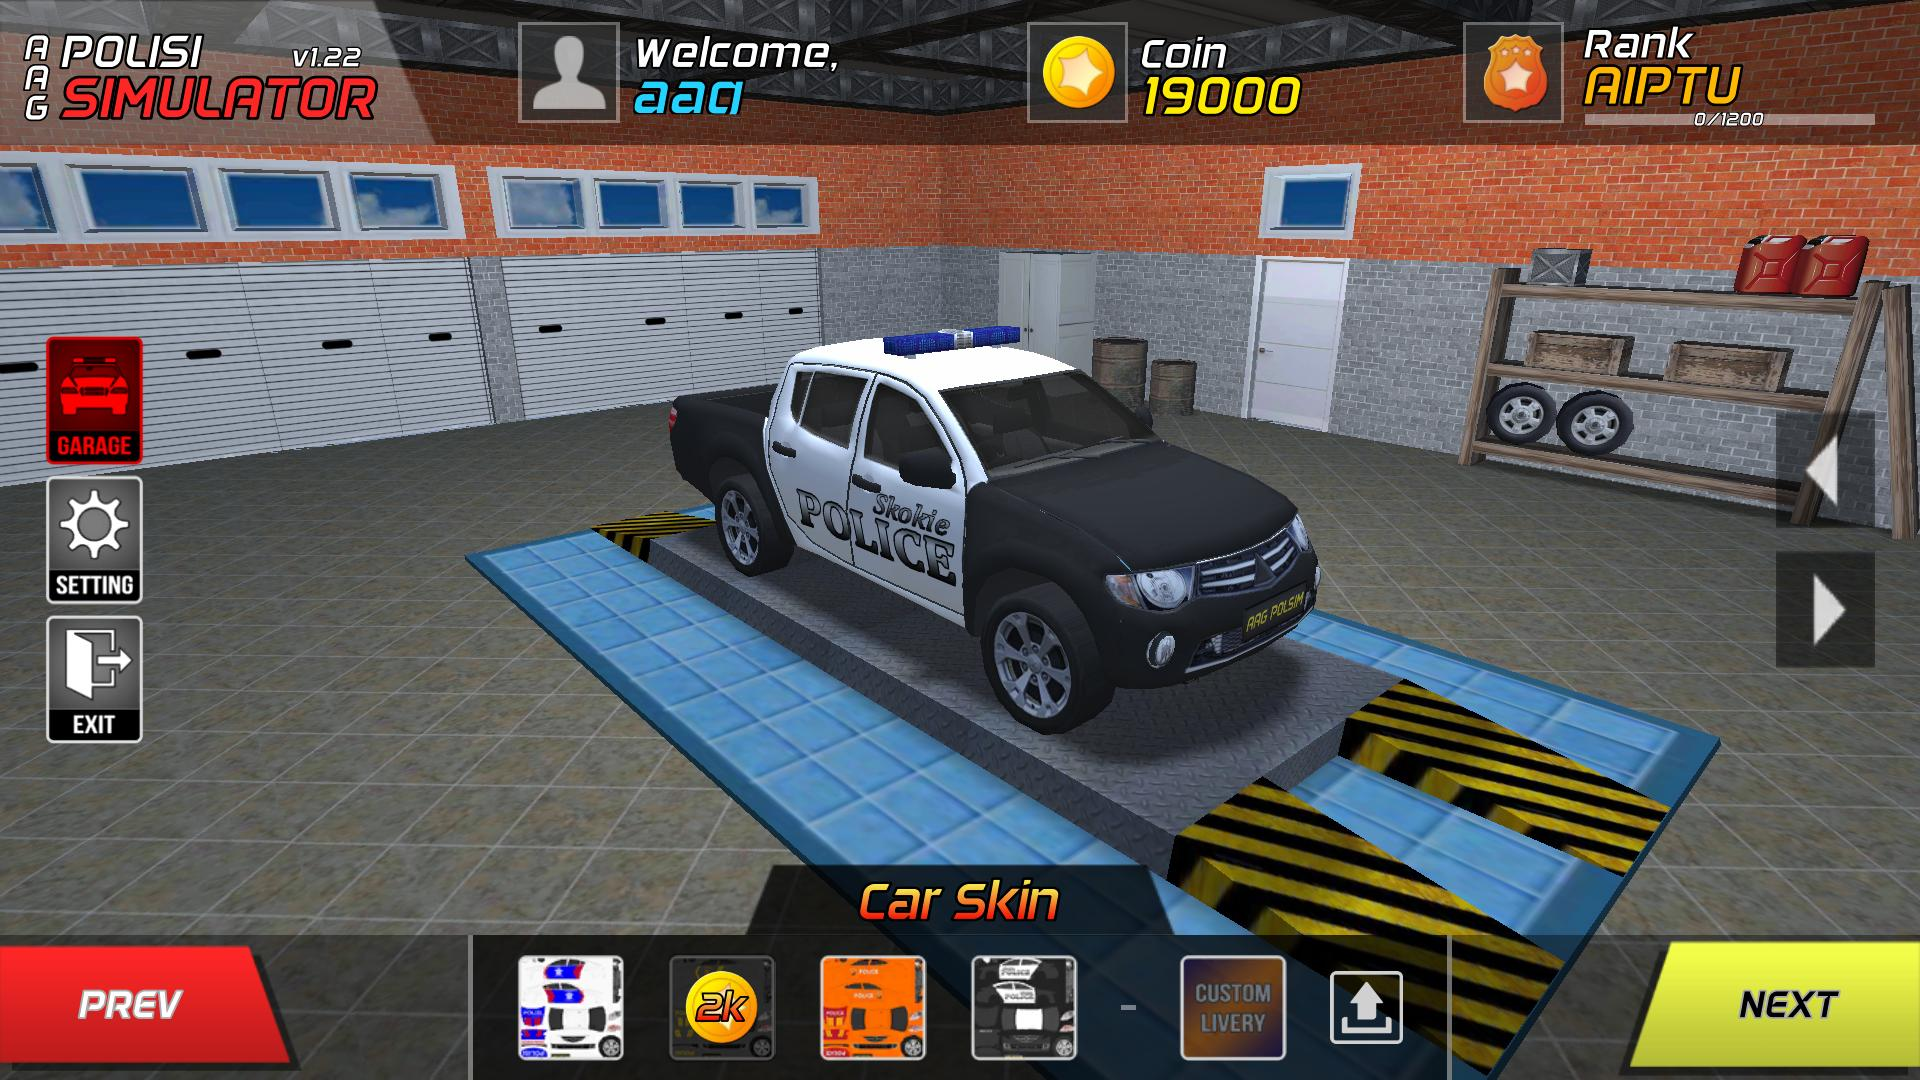 AAG Police Simulator for Android - APK Download